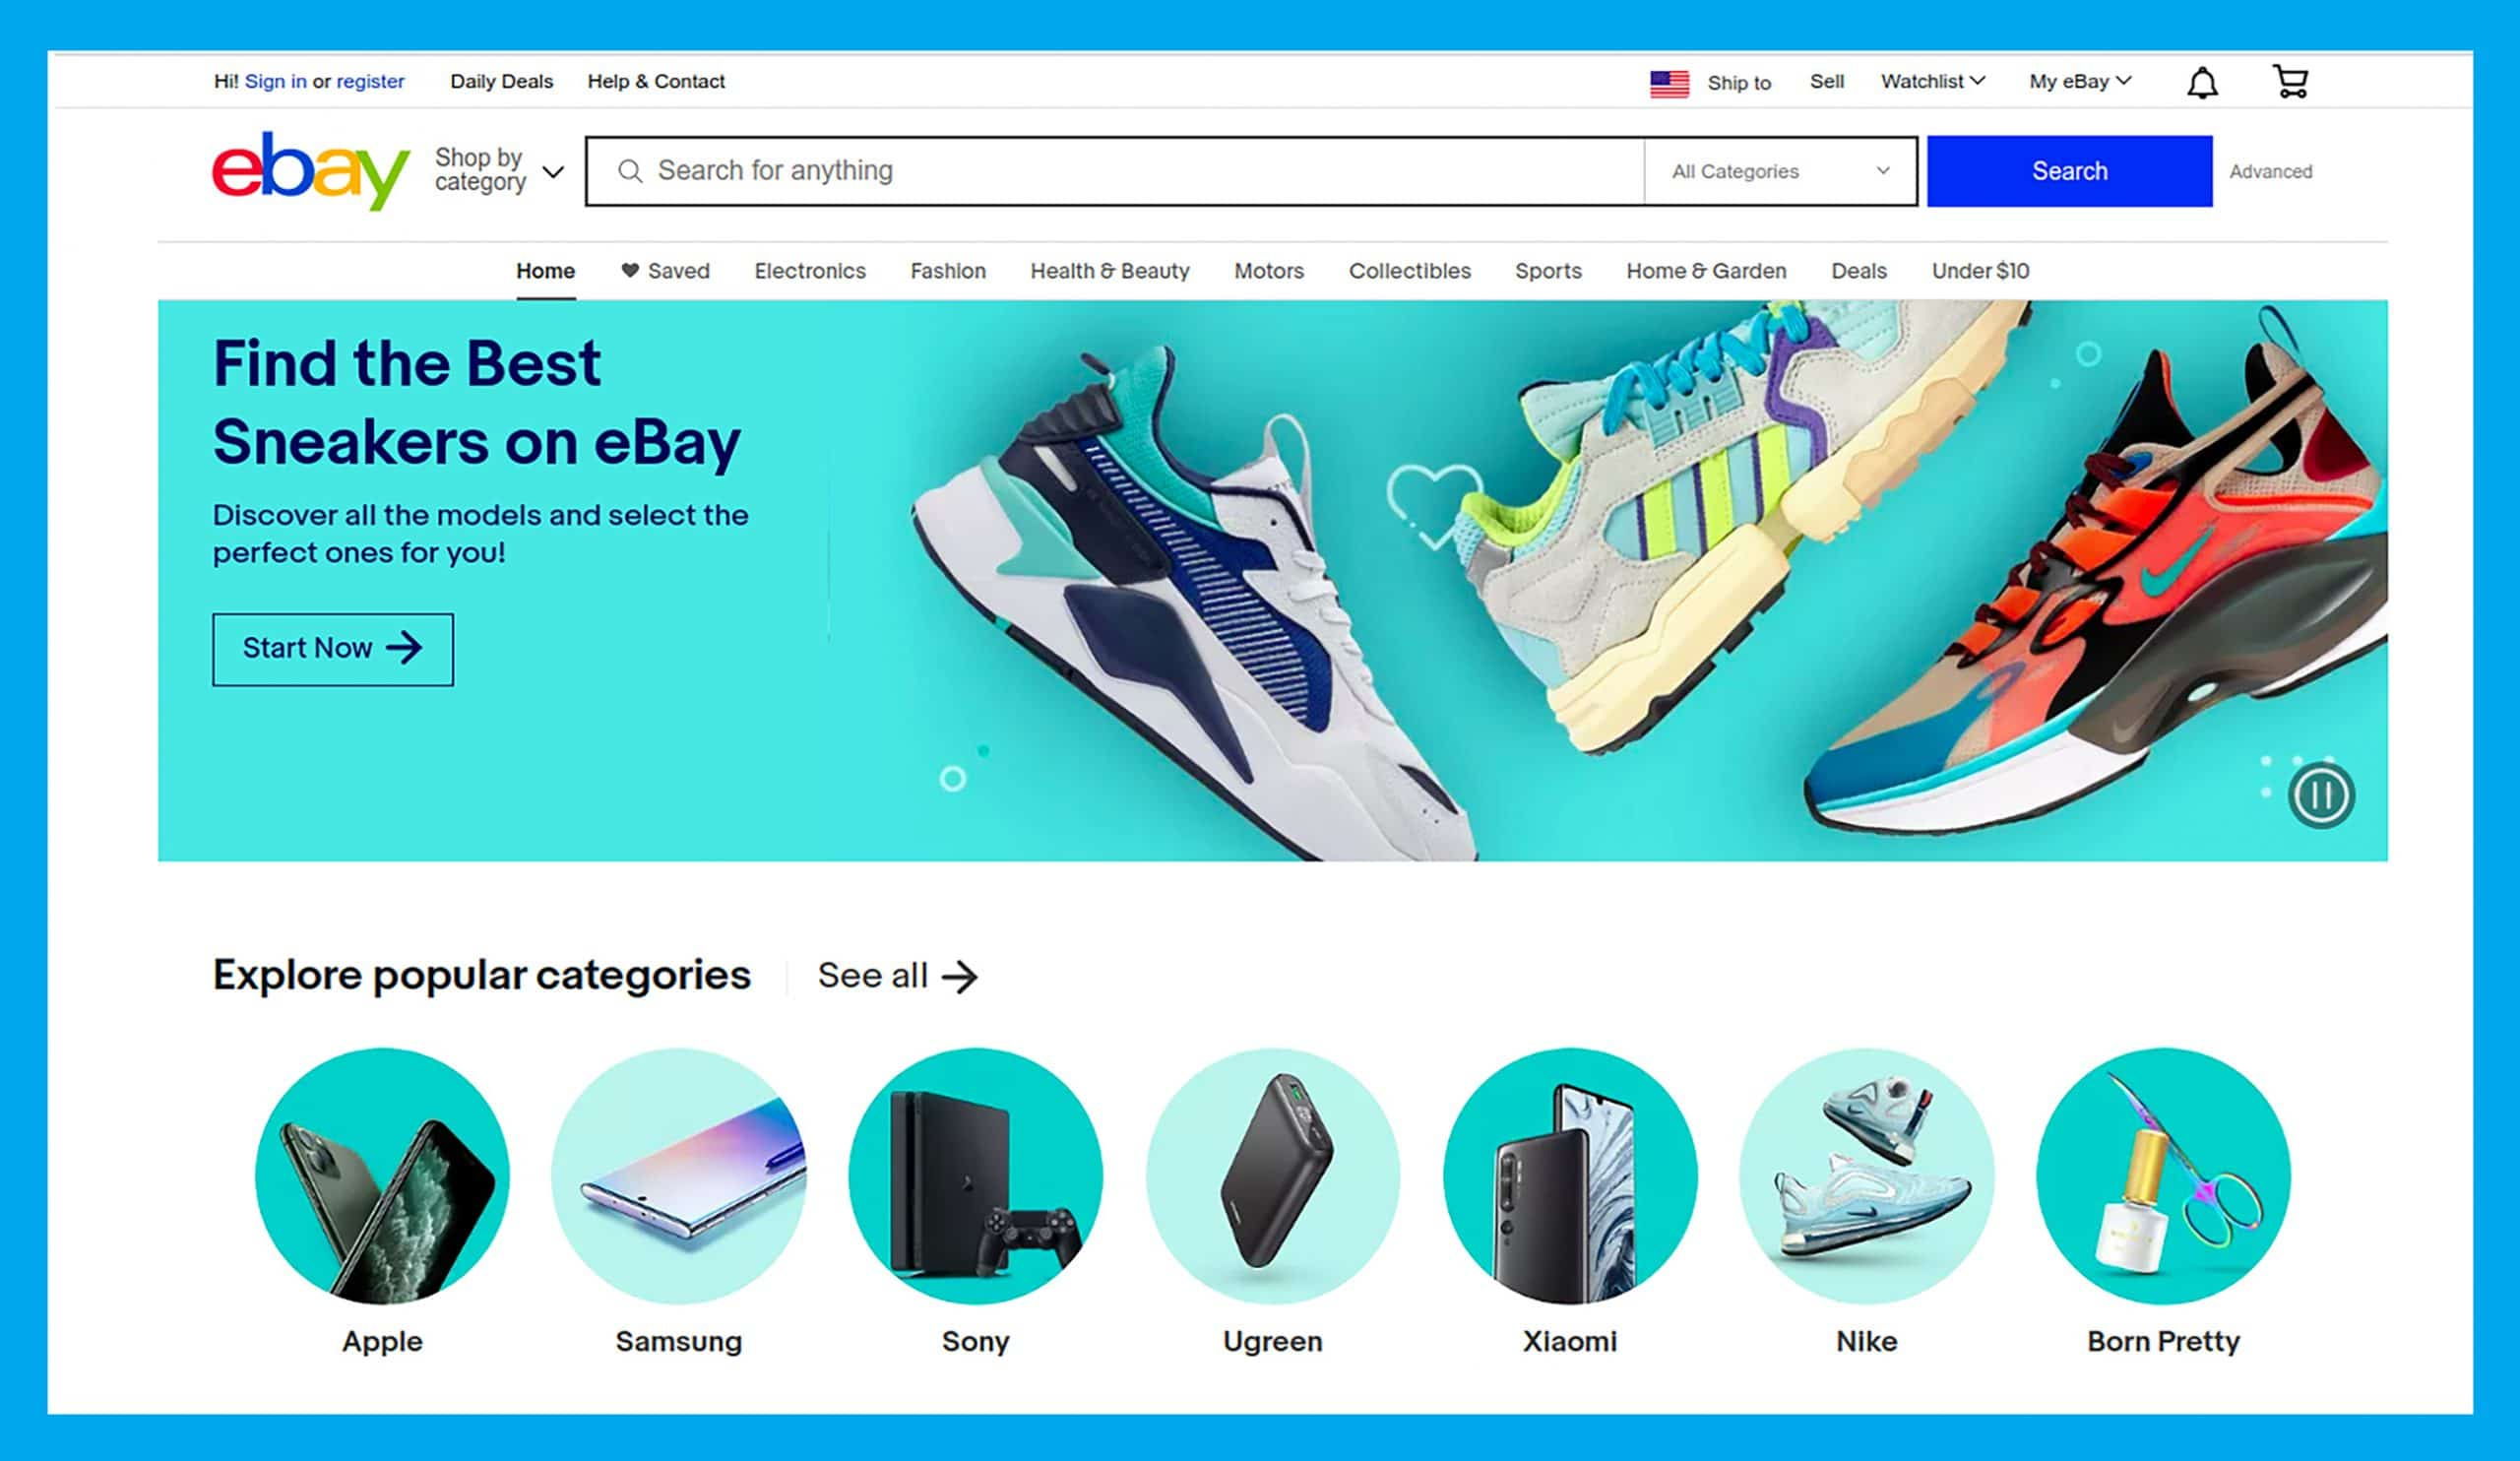 eBay provides smooth UX with easy and intuitive design